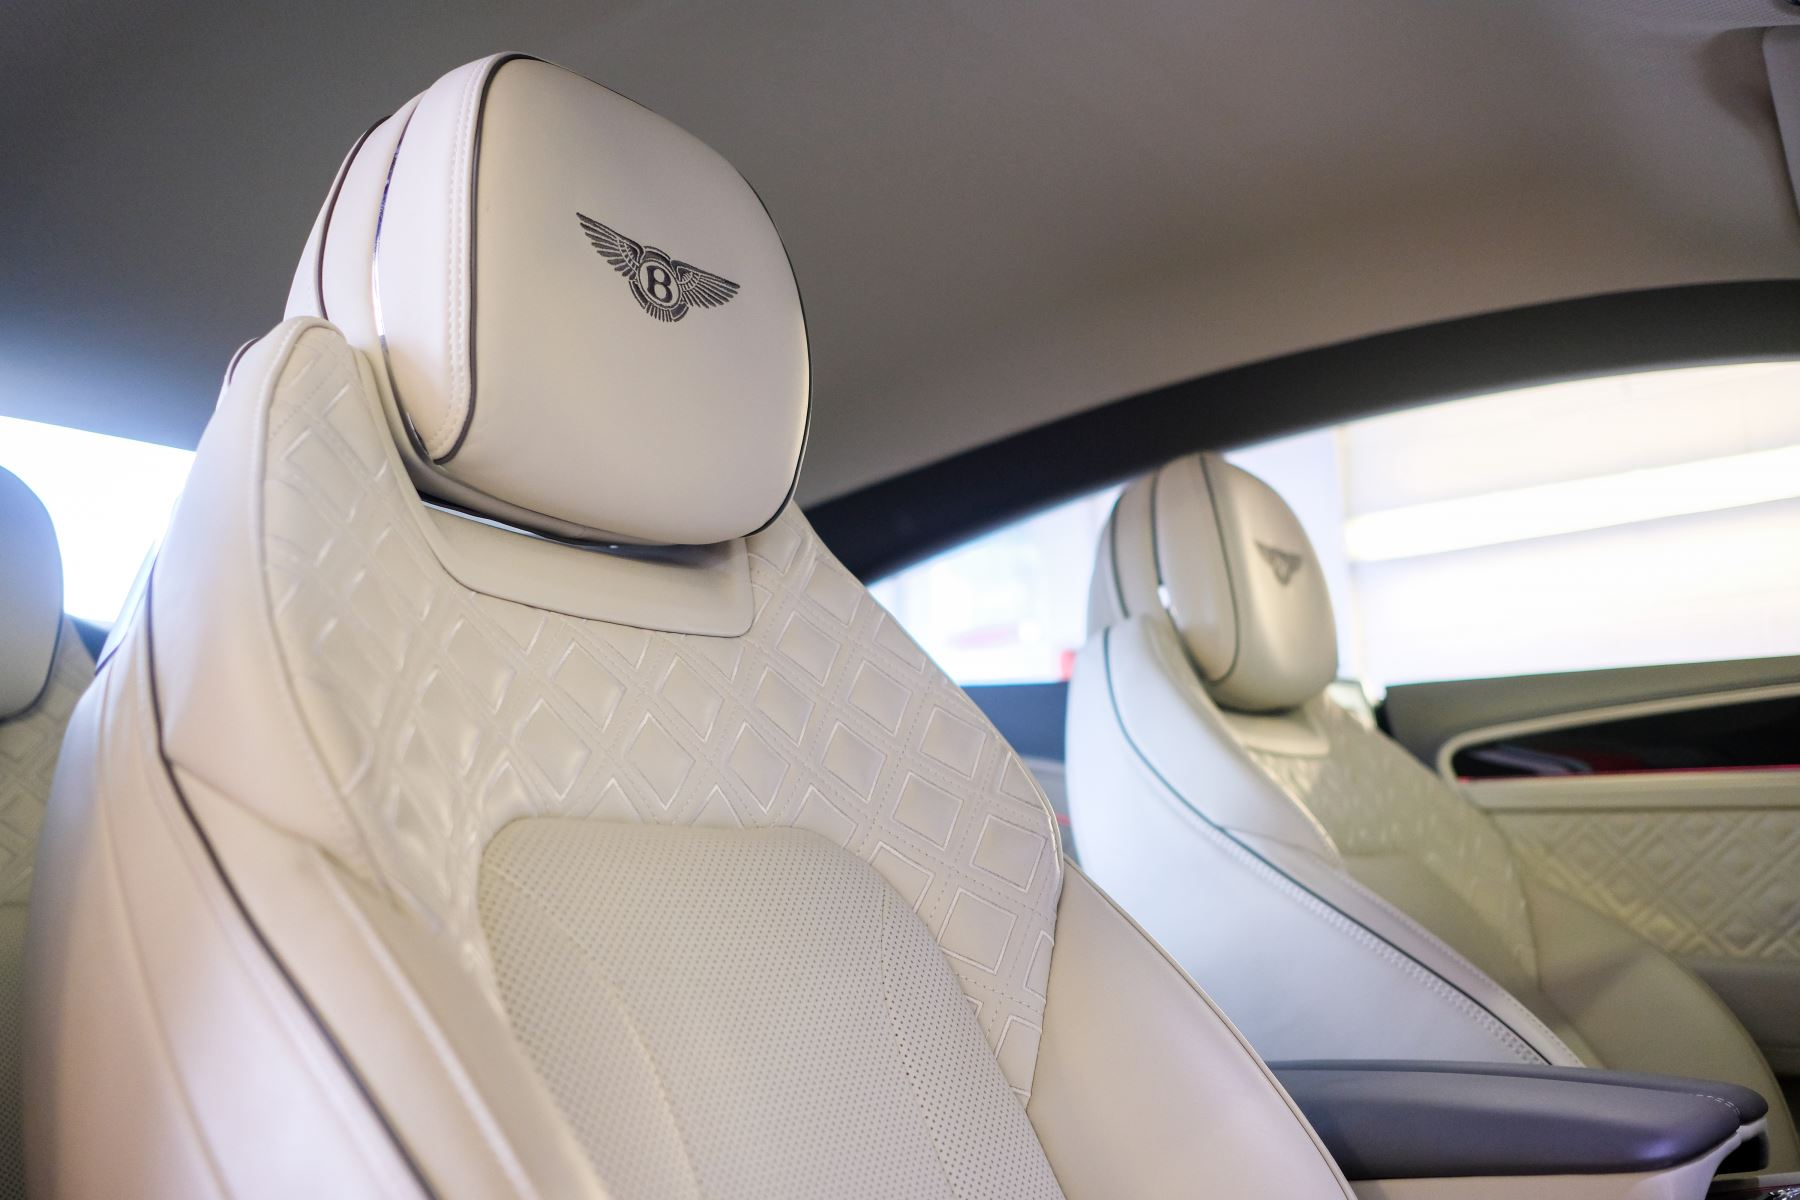 Bentley Continental GT 4.0 V8 - Mulliner Driving Specification with Black Painted Wheels - Touring and Centenary Spec image 44